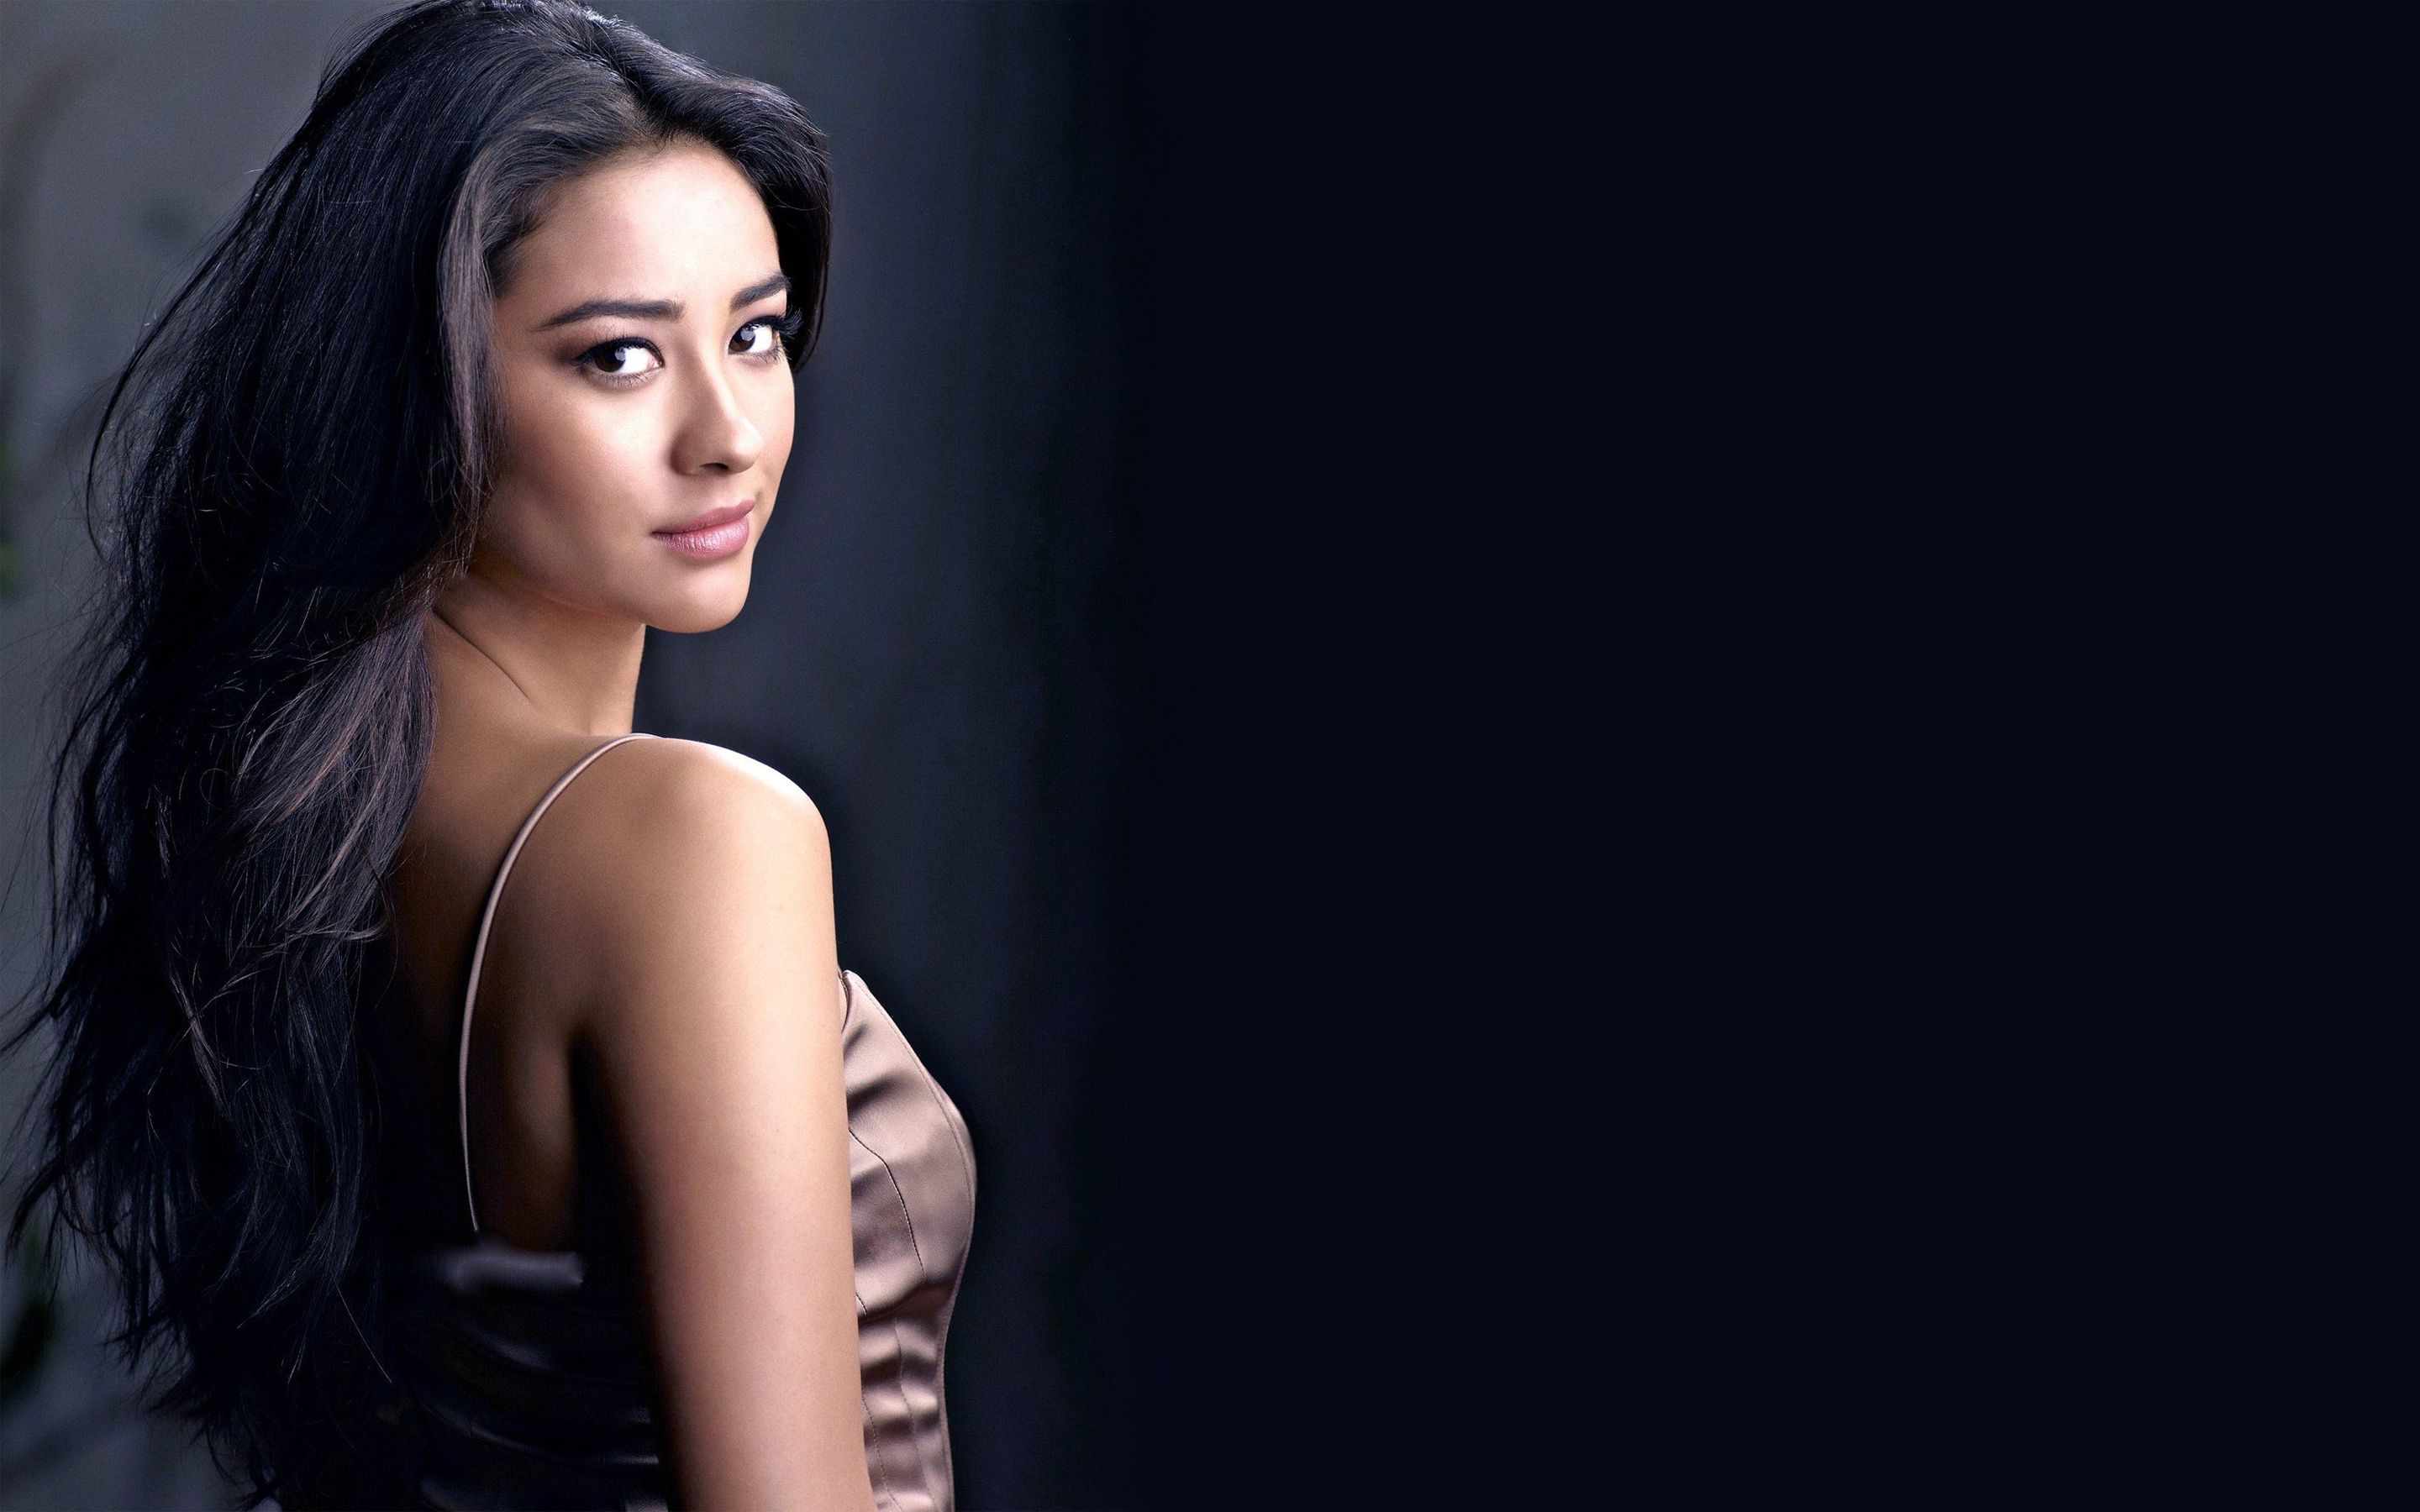 2880x1800 - Shay Mitchell Wallpapers 6